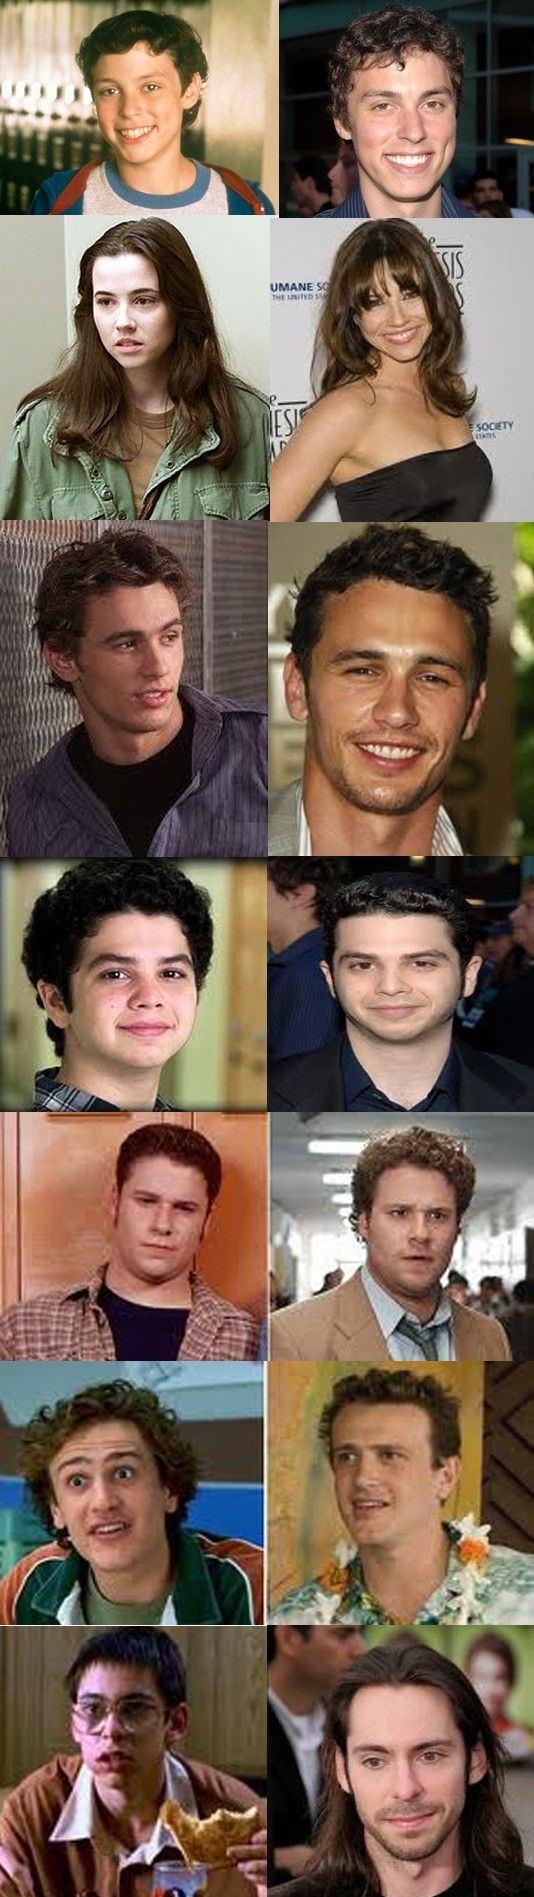 freaks and geeks then & now.......who is the guy at the top? i know him from somewhere